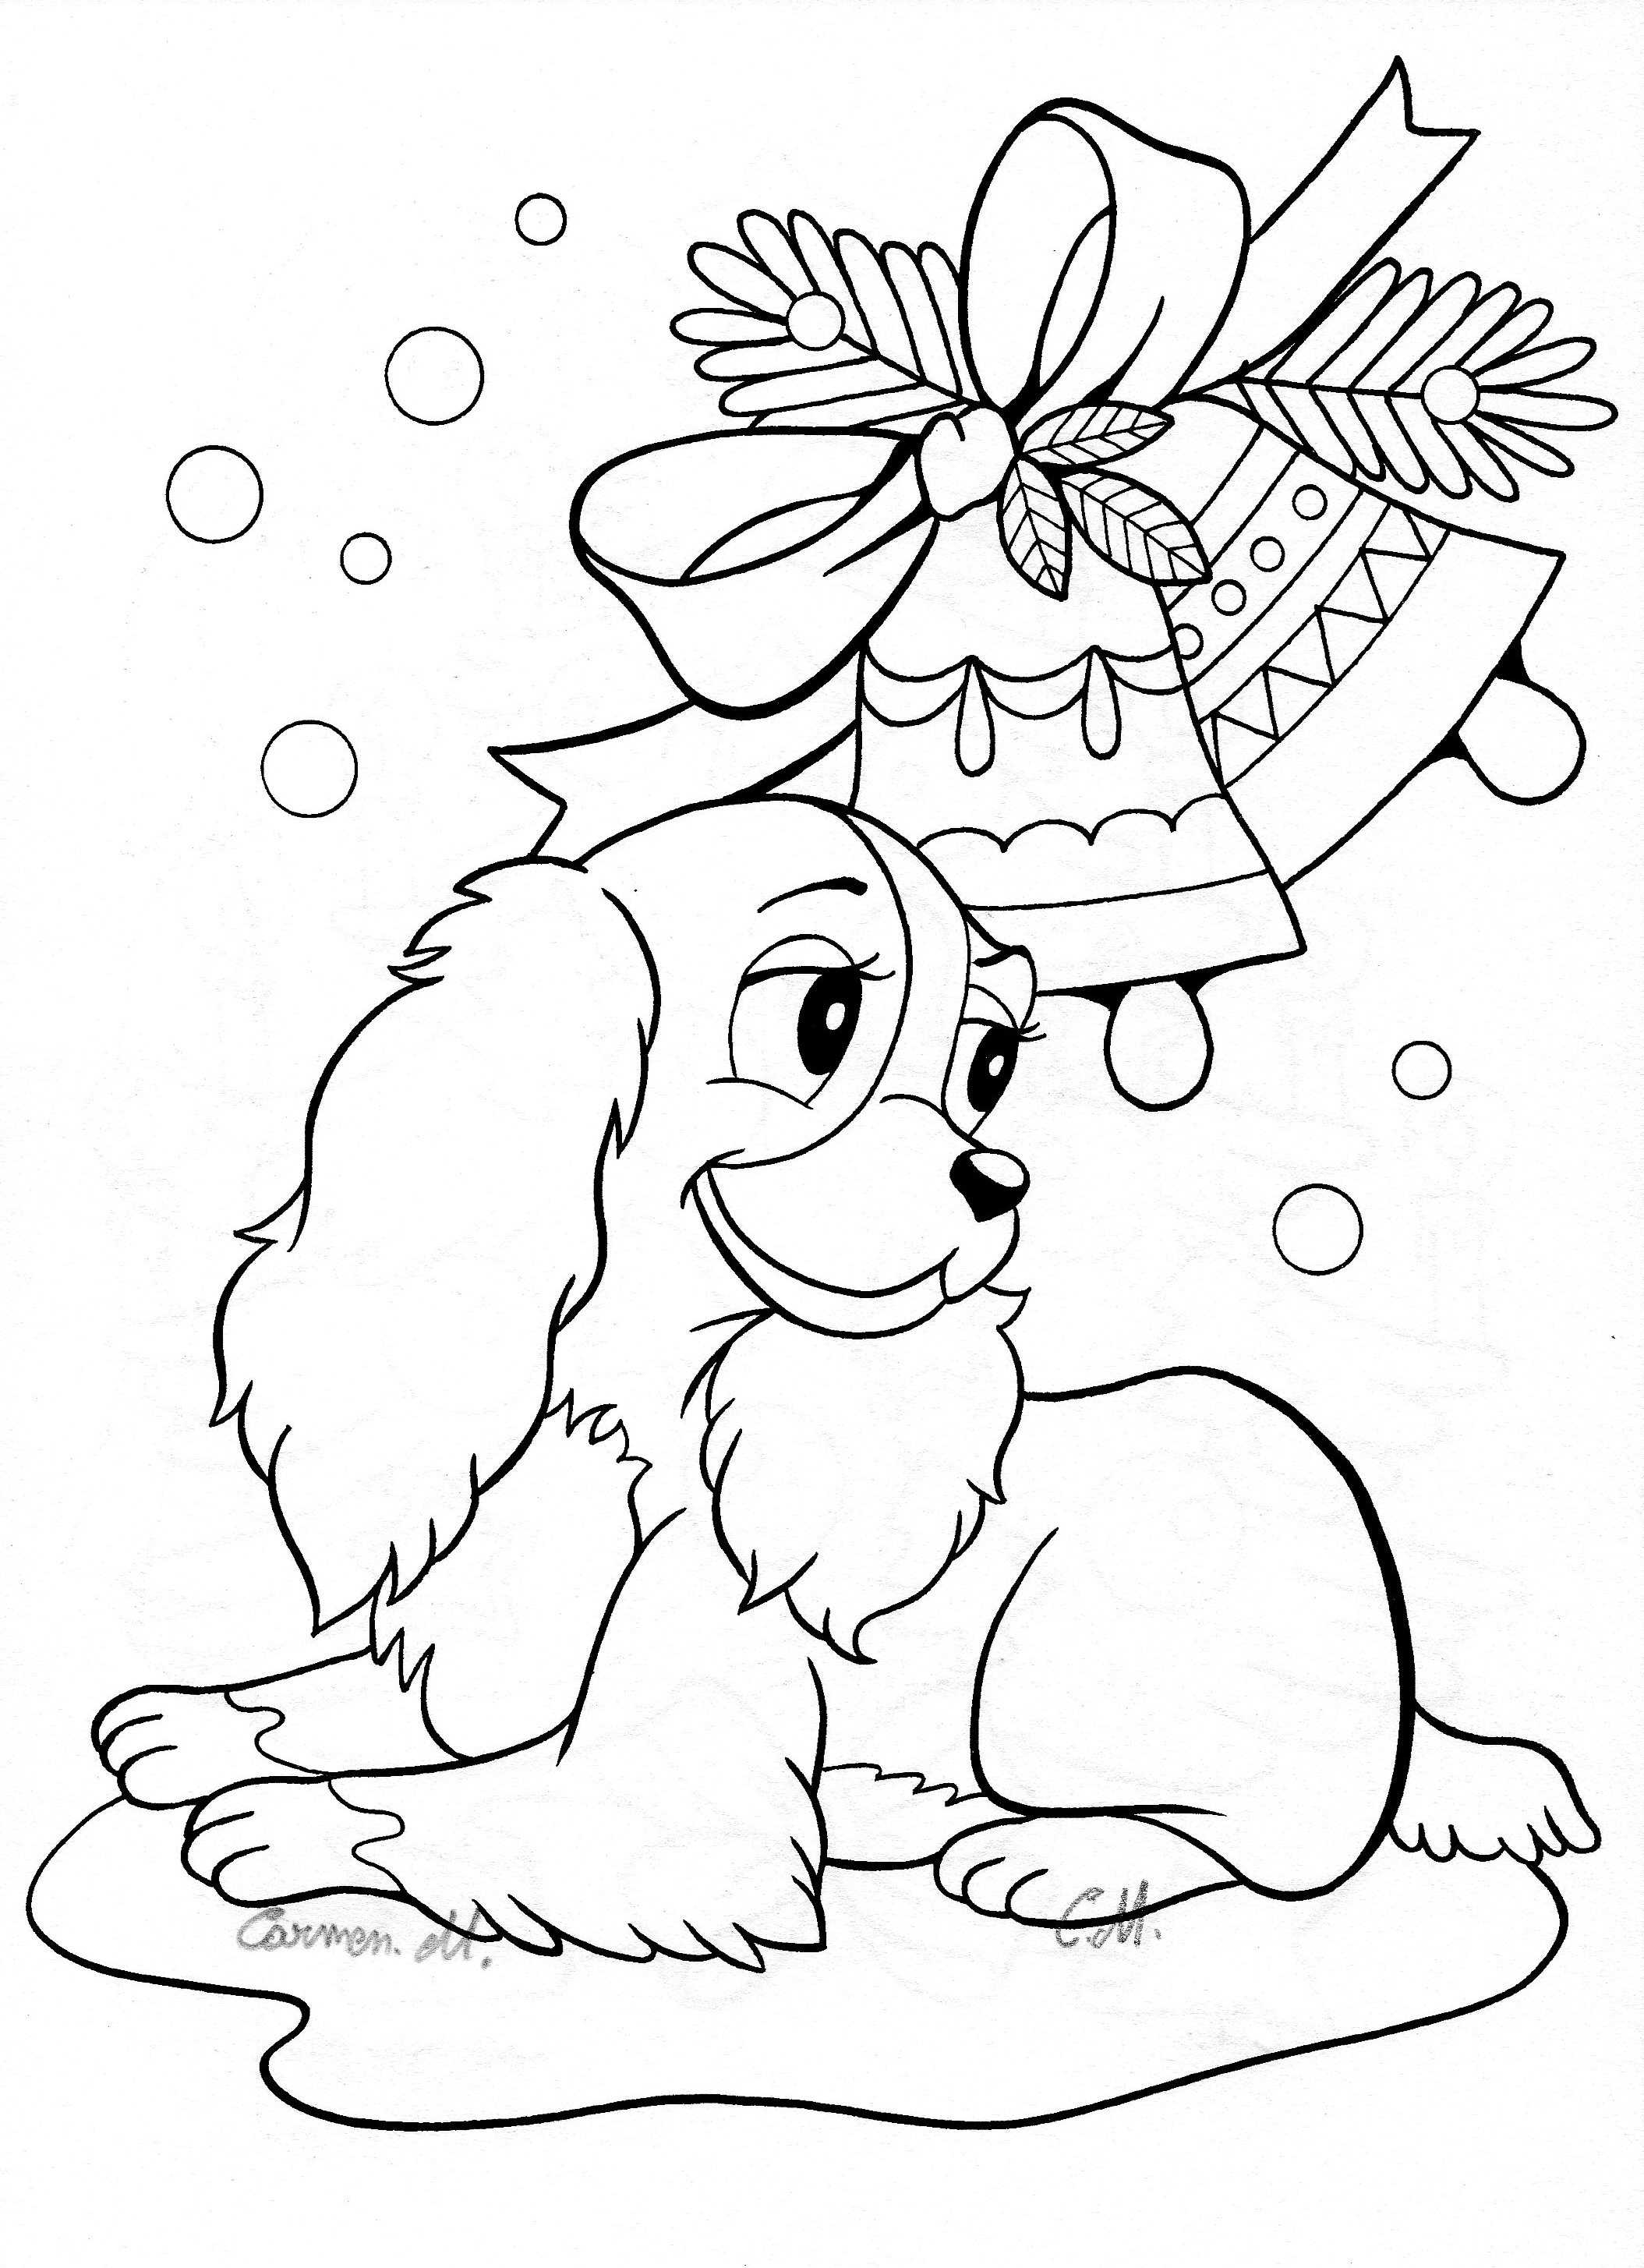 Awesome Kids Crafts Cute Coloring Pages Printable Of Cute Coloring Pages for Girls Printable Kids Colouring Pages Kids Gallery